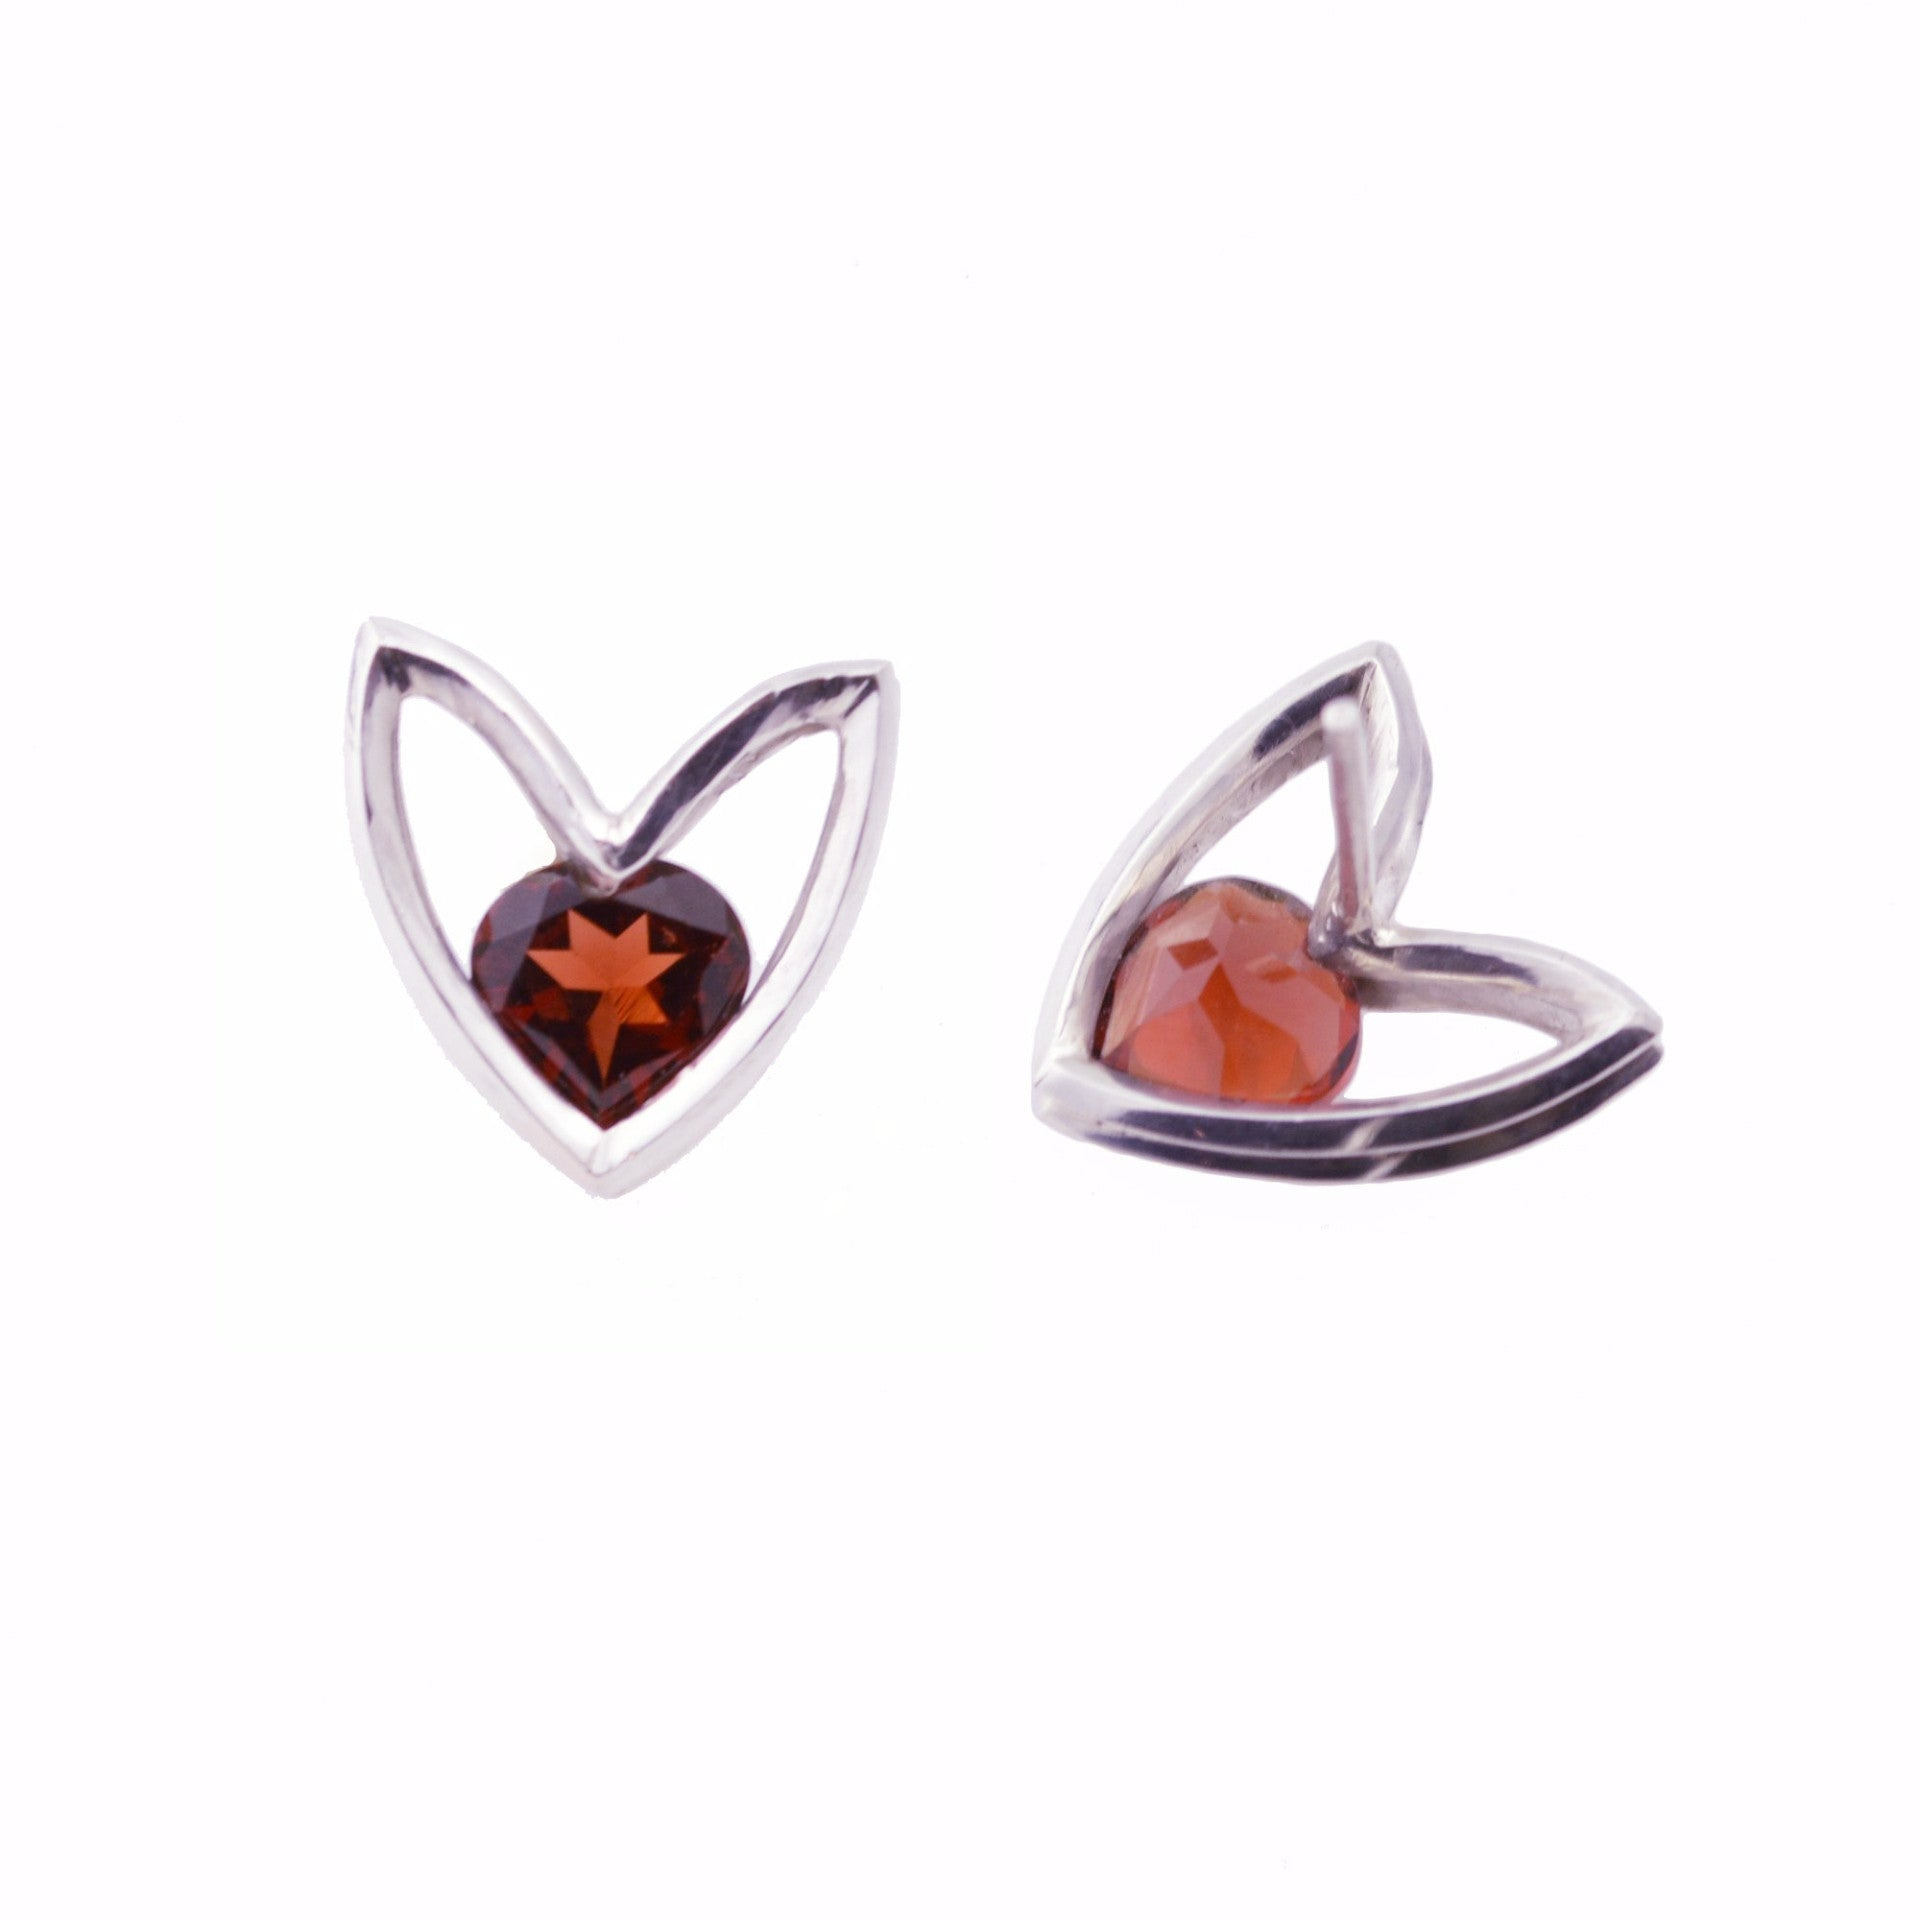 Flora-form Heart Stud Earrings in Sterling Silver with faceted Garnet